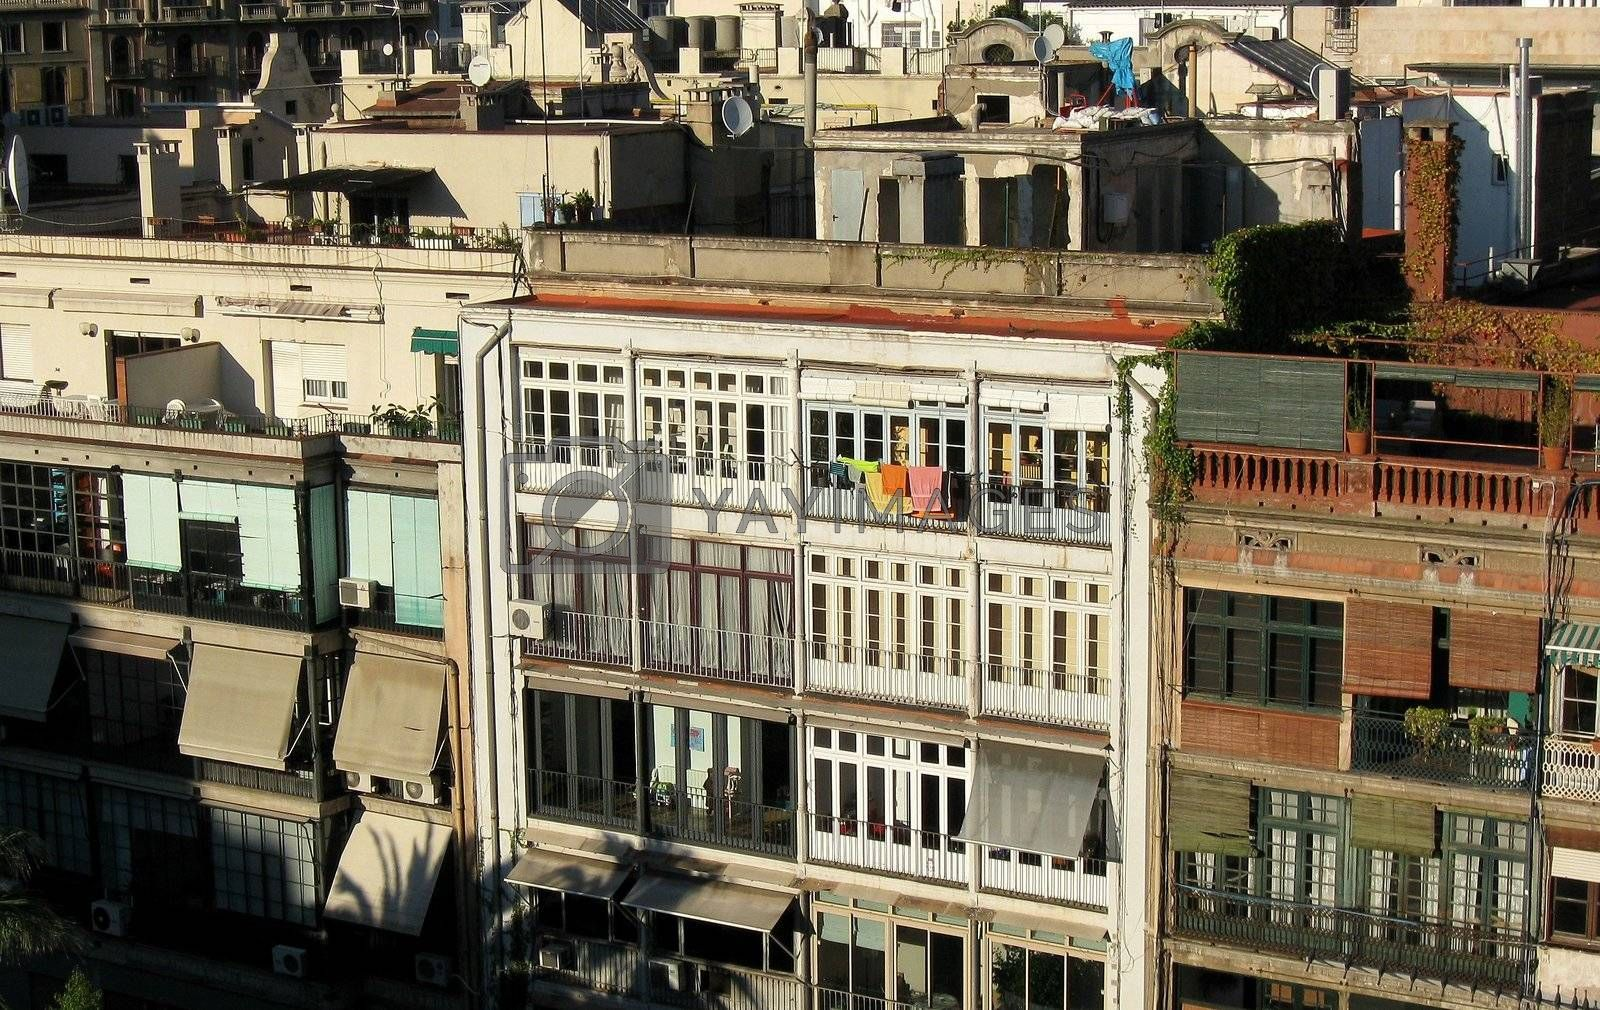 Towels hanging off railing in appartment building with no balconies